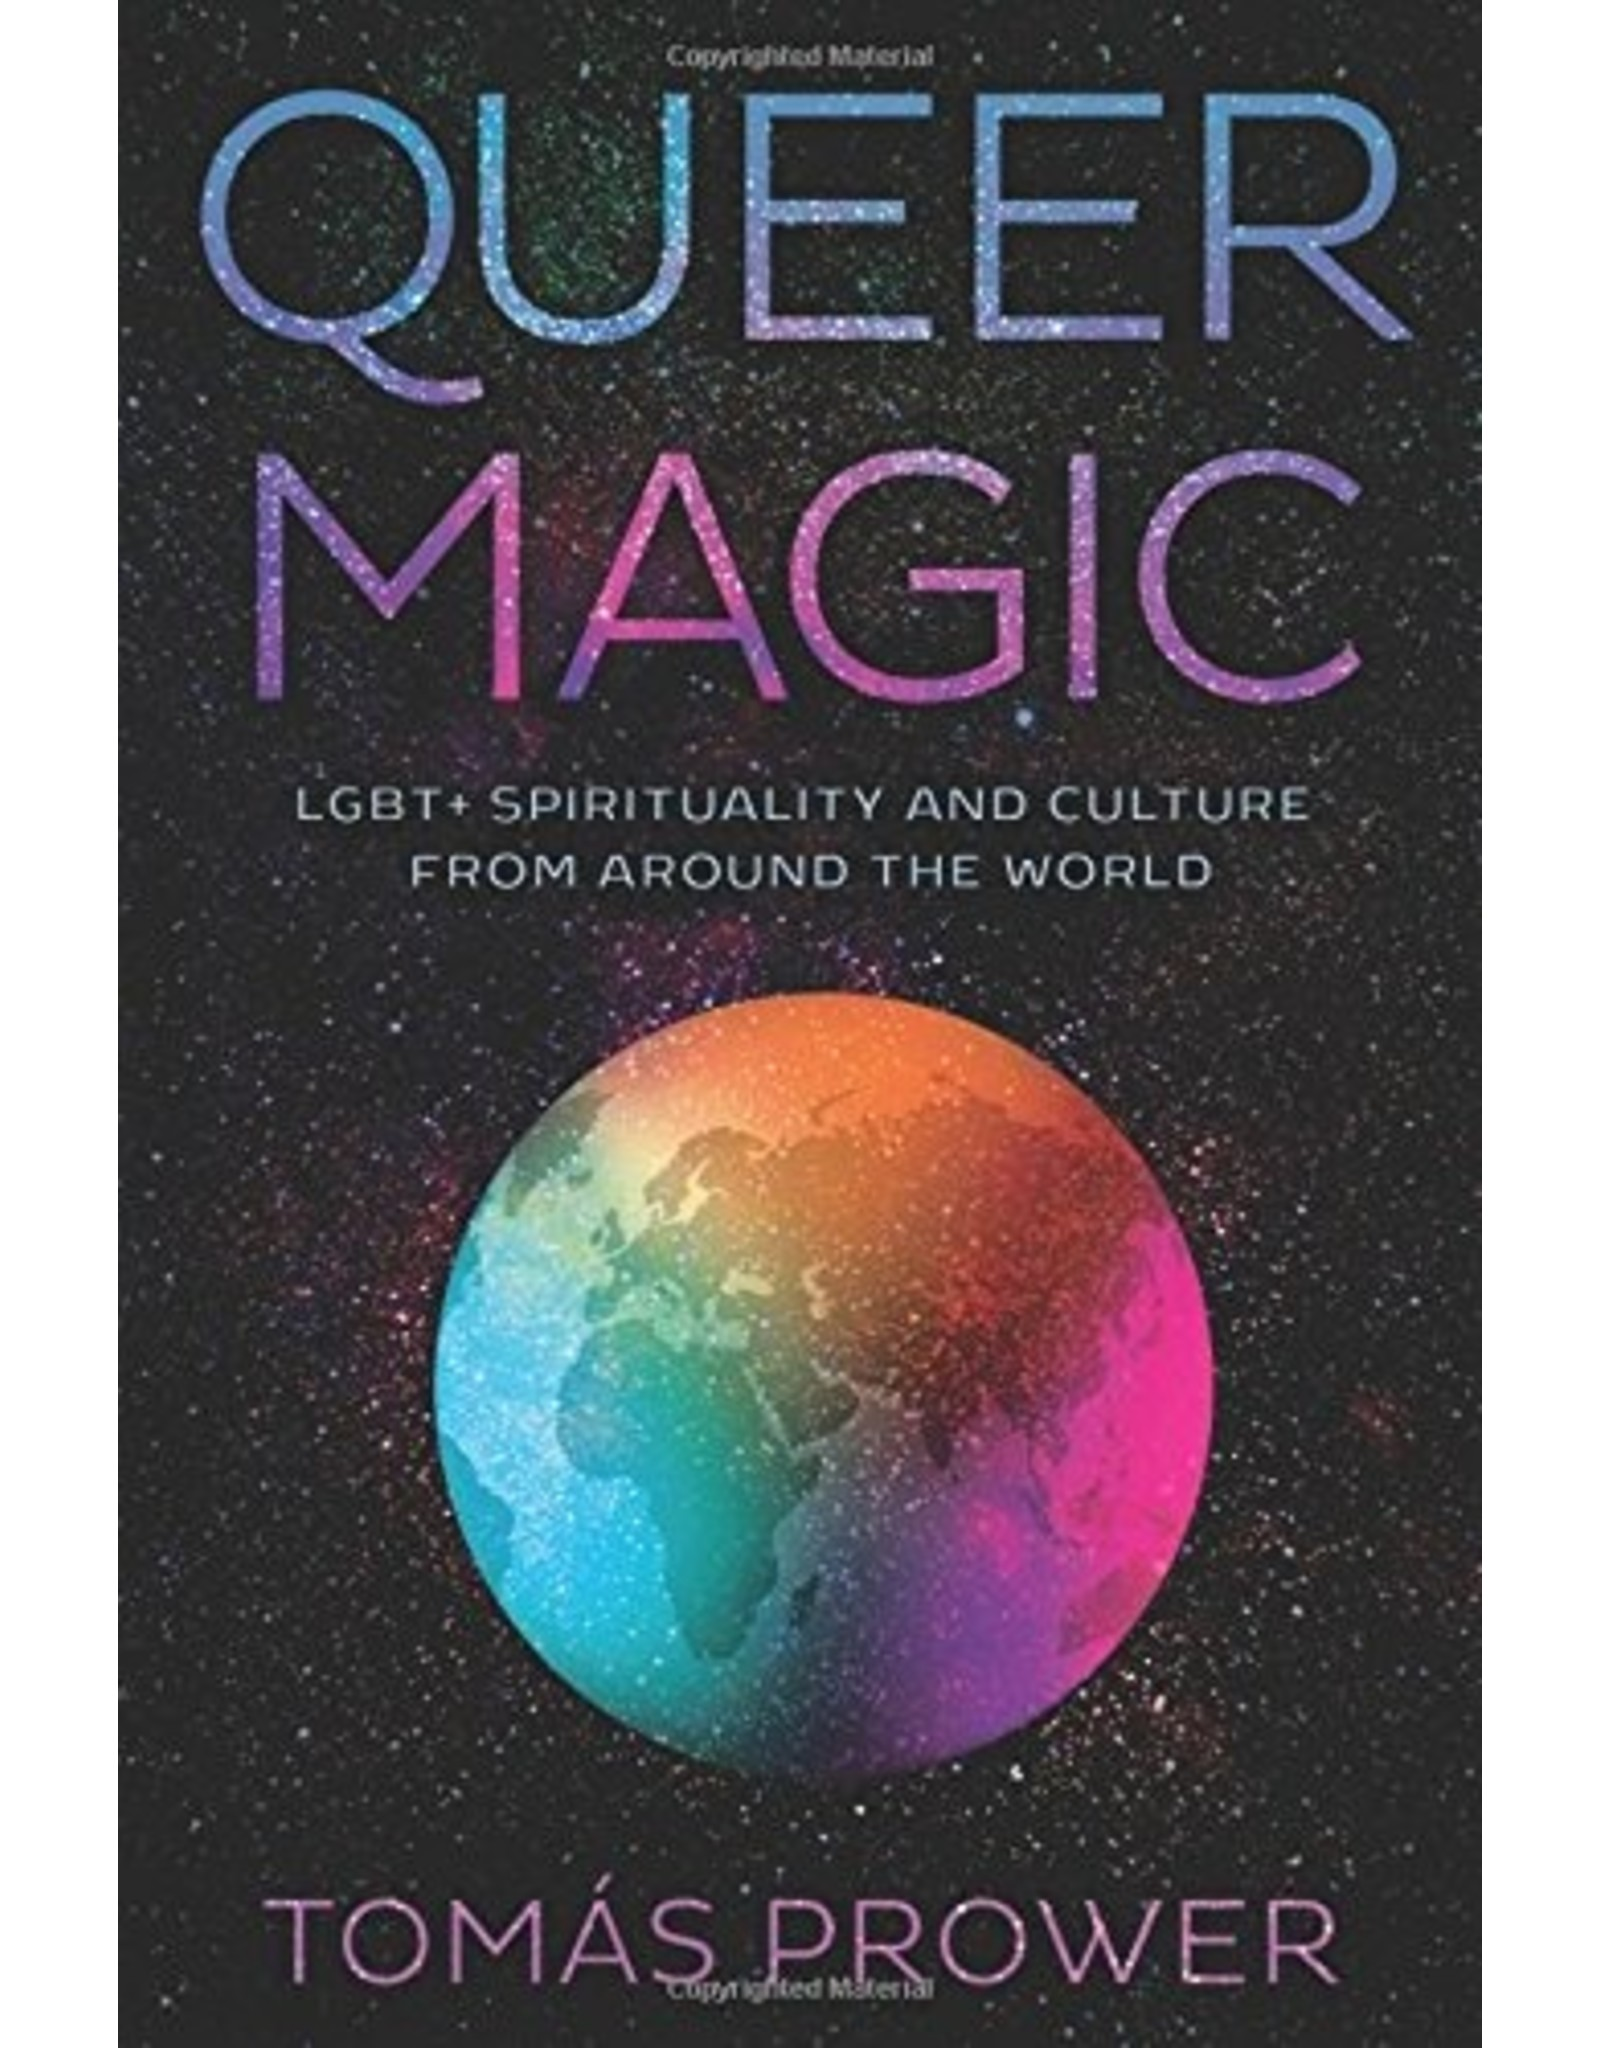 Queer Magic: LGBT + Spirituality and Culture from Around the World